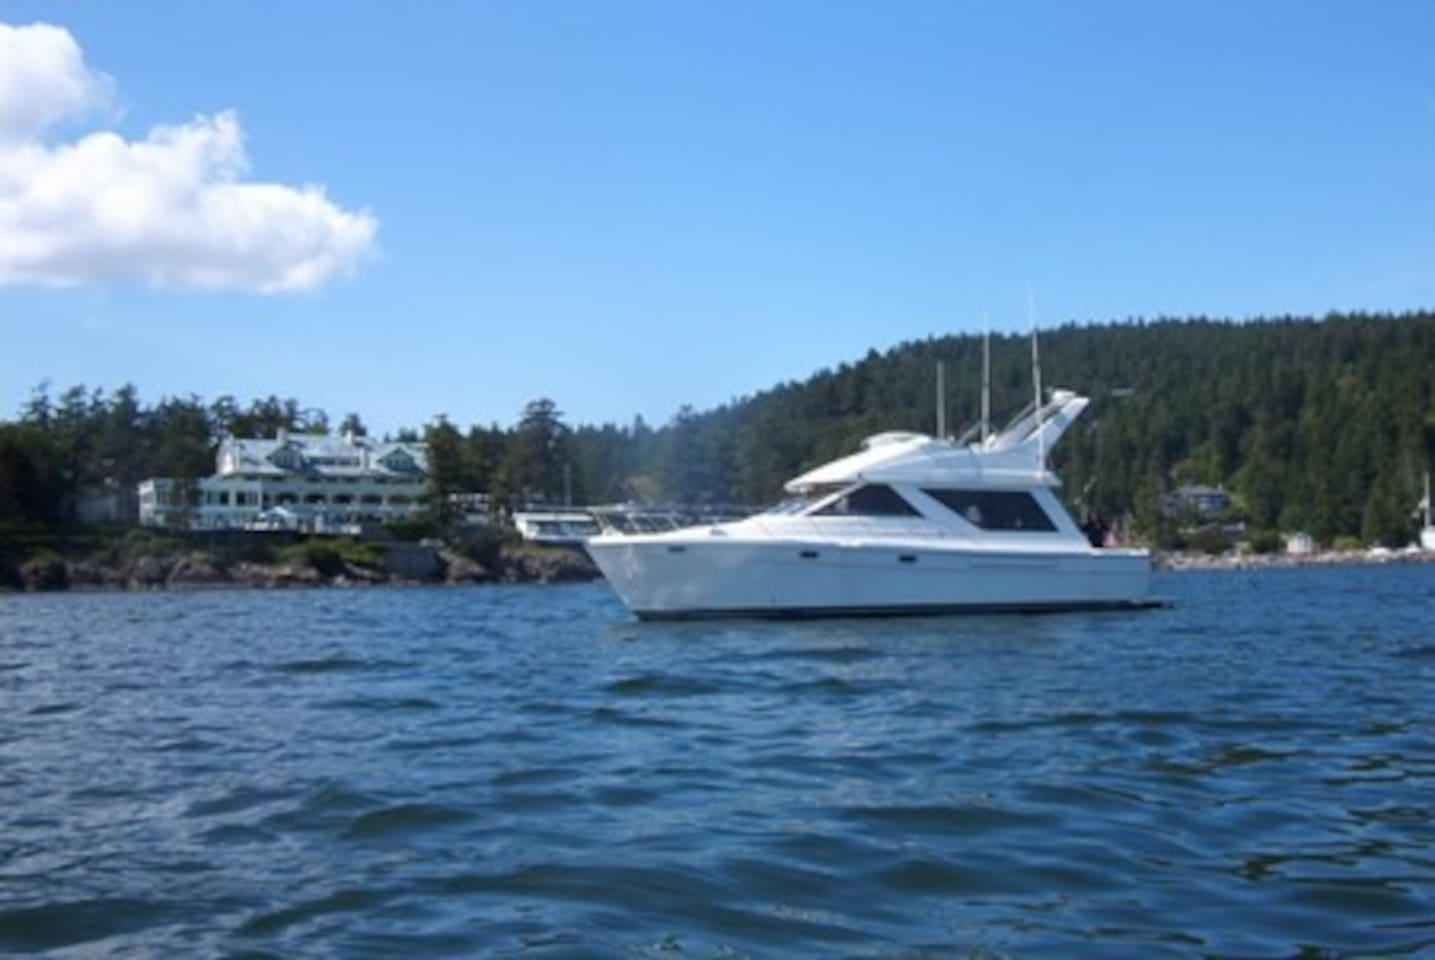 Yacht on Charter in the San Juans